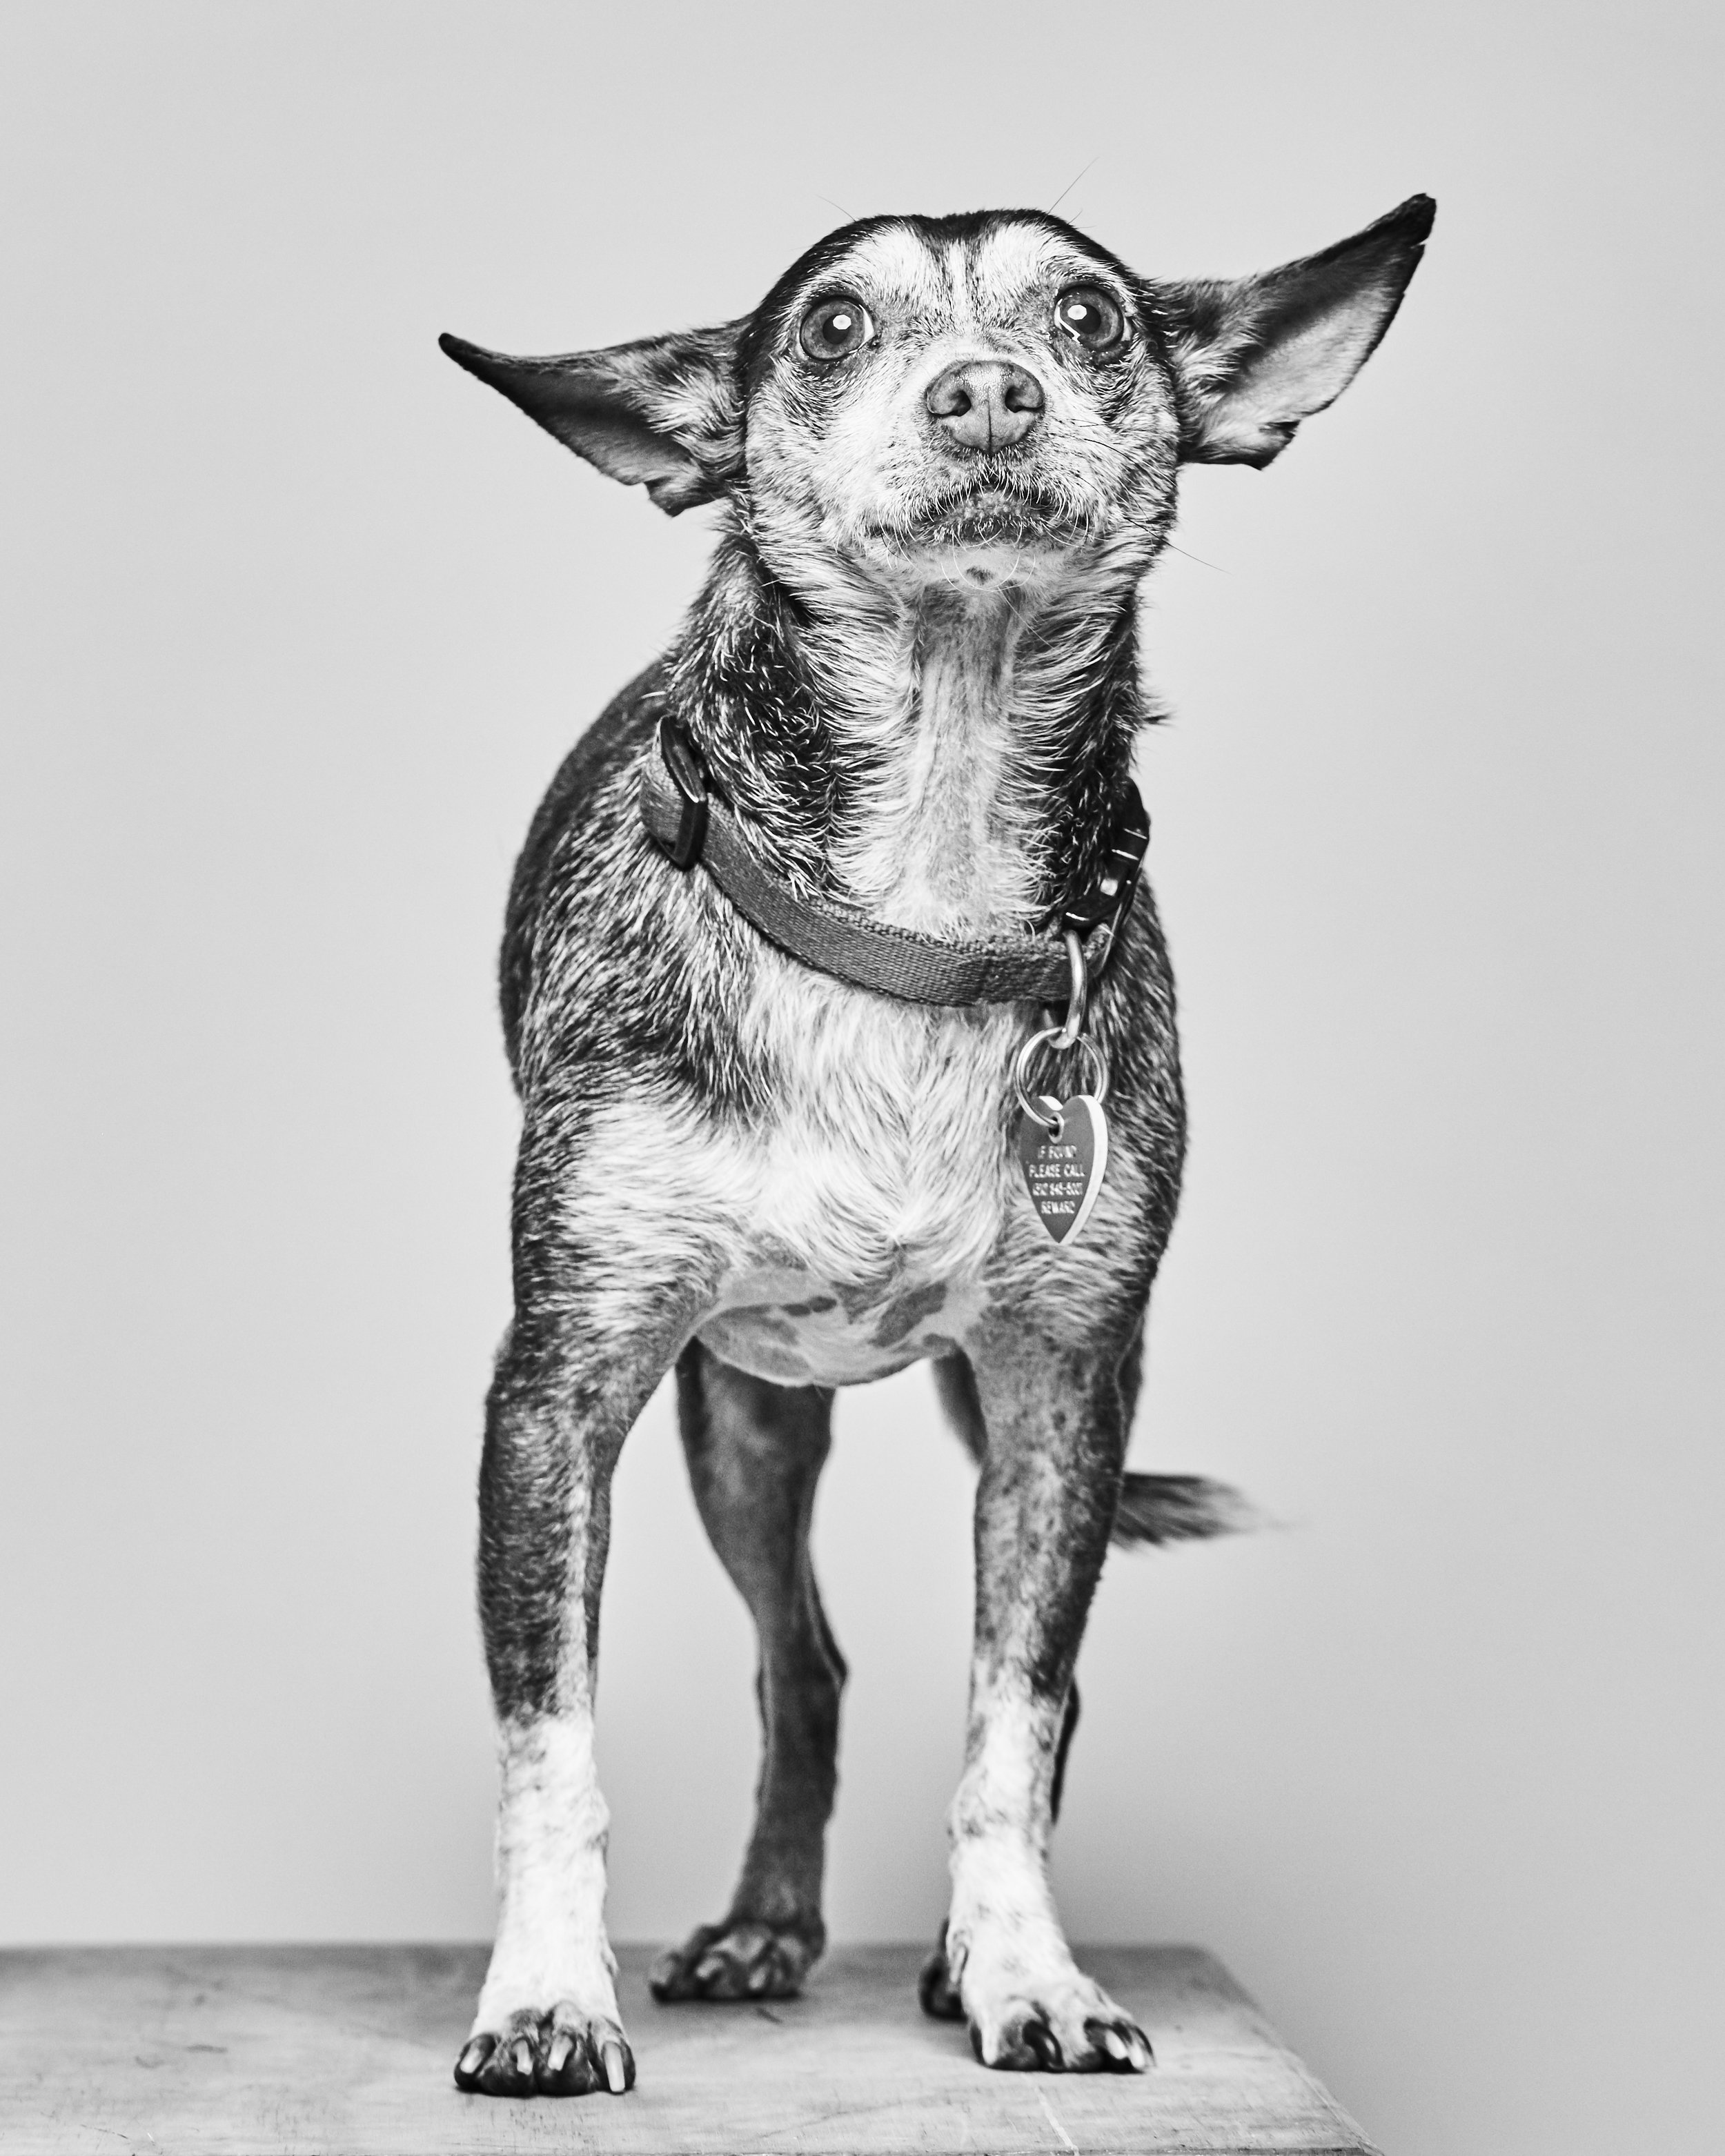 This 6.5 year old chi reminds us that big love can come in a small package! He came to us with a terrible fungal infection on his skin, 8 teeth rotting in his mouth and a cyst on his eye blocking his vision. With proper medical care and surgery from a few specialists, Robby feels like a whole new boy! And his way of saying thanks is by snuggling up to his human friends. Robby is a little shy when he first meets new people, but he quickly warms up and becomes a loyal companion. He's good with other dogs, and like to pretend to be the king of all the dogs he hangs with, regardless of size.